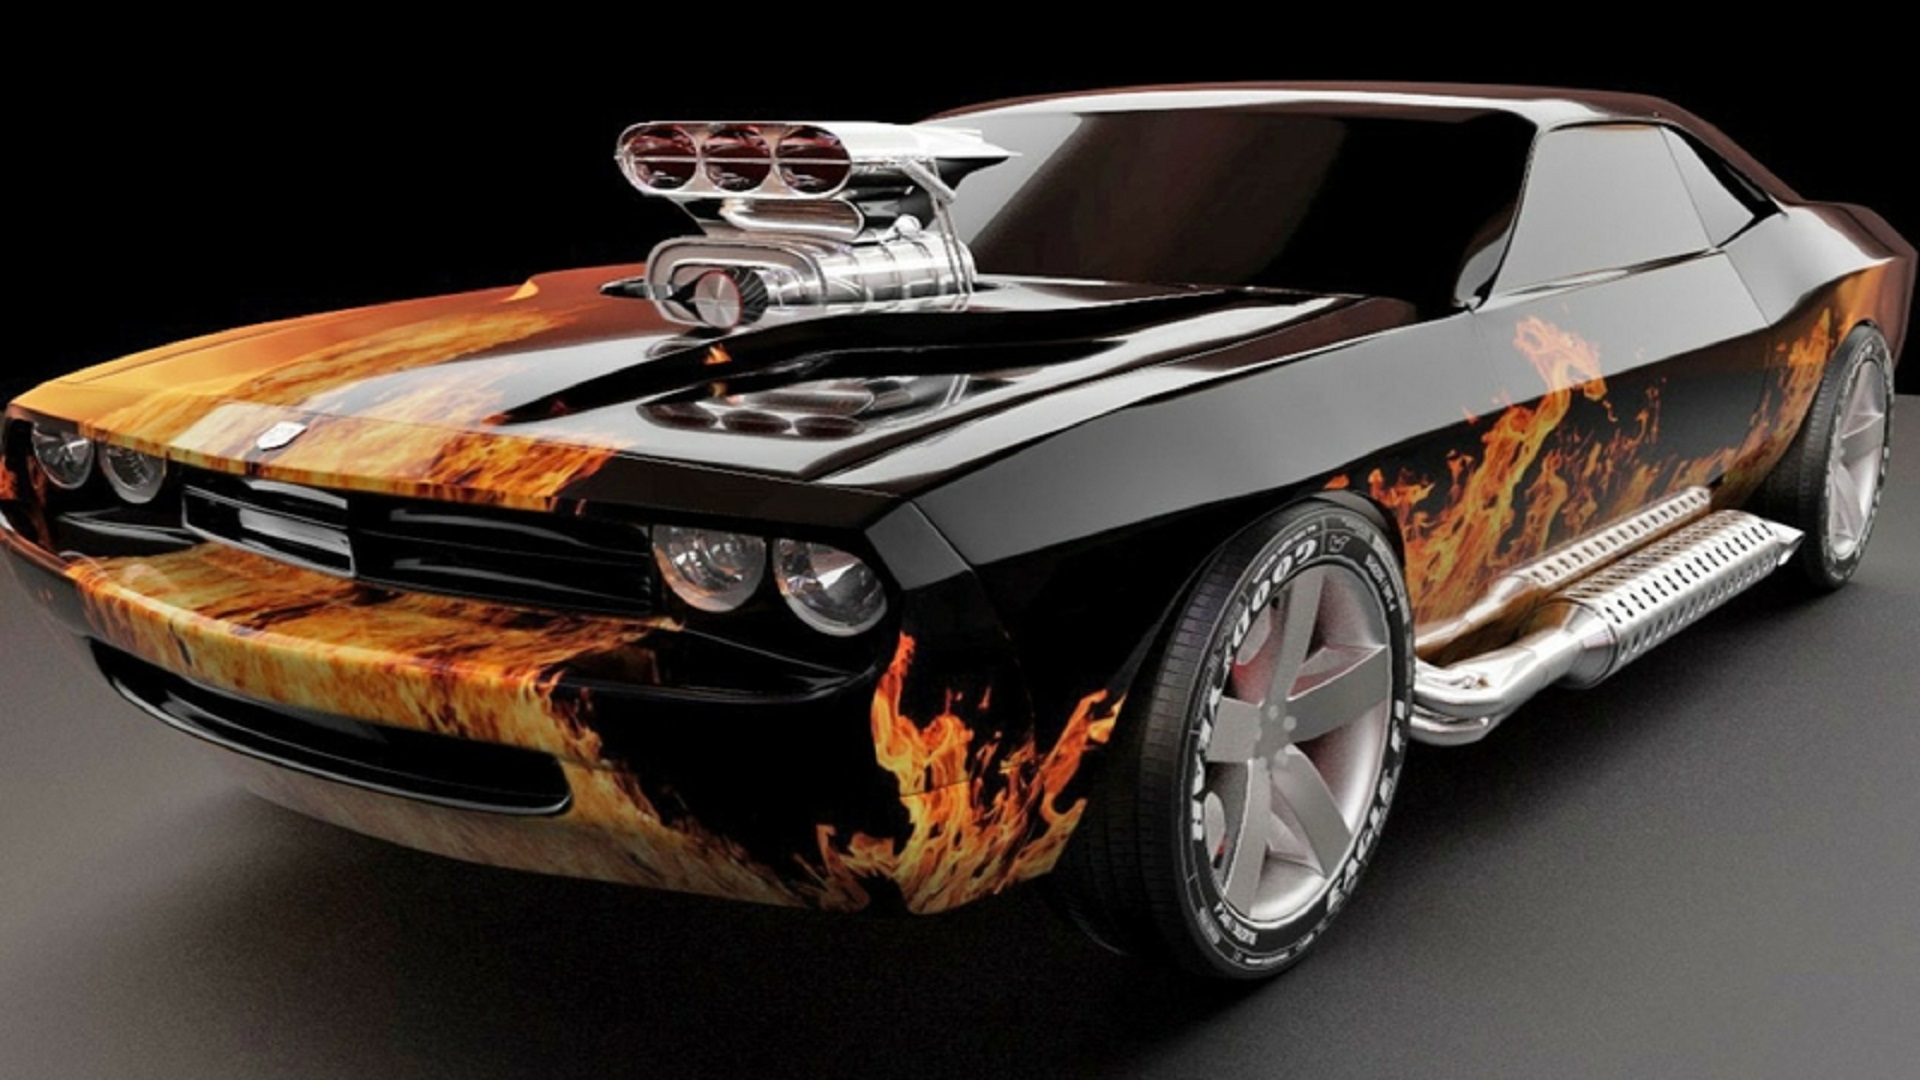 flames cars muscle cars chevrolet vehicles muscle 1440x900